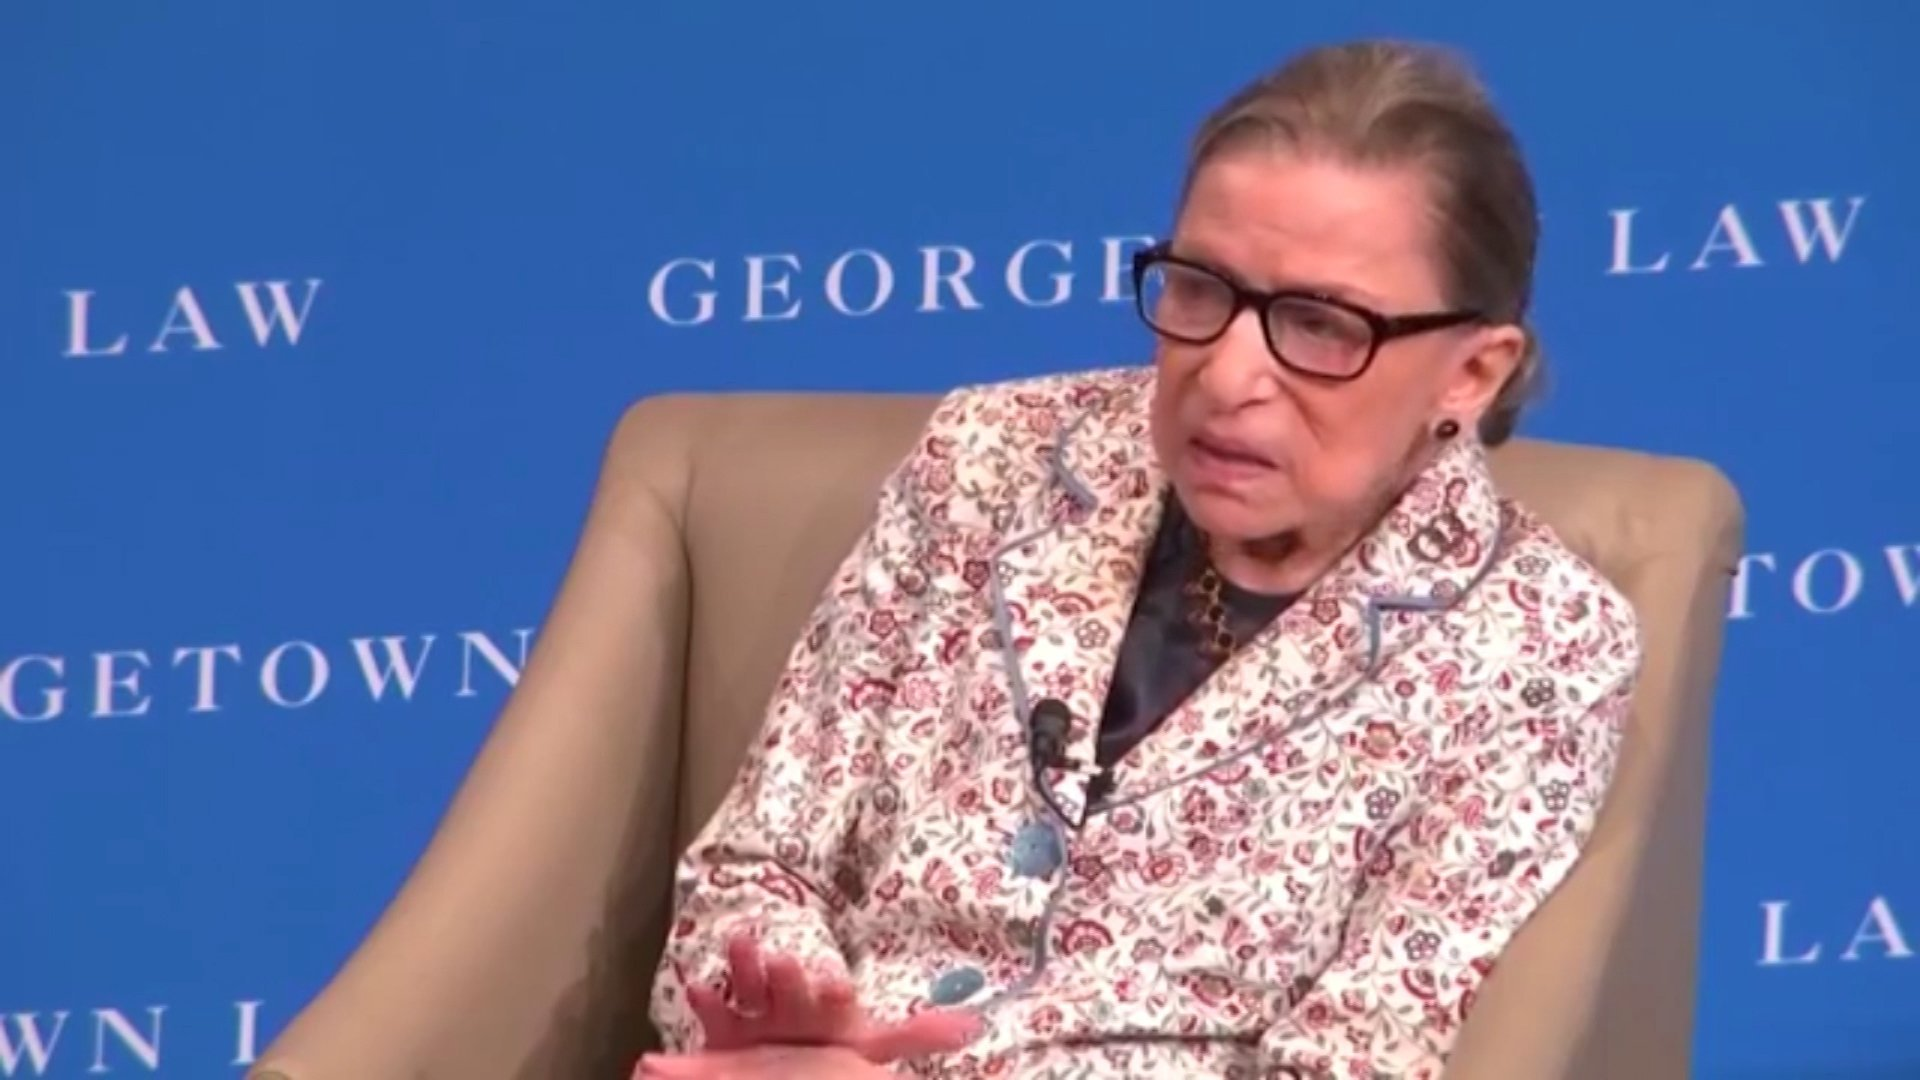 Justice Ginsburg returns to Supreme Court for work afterfall